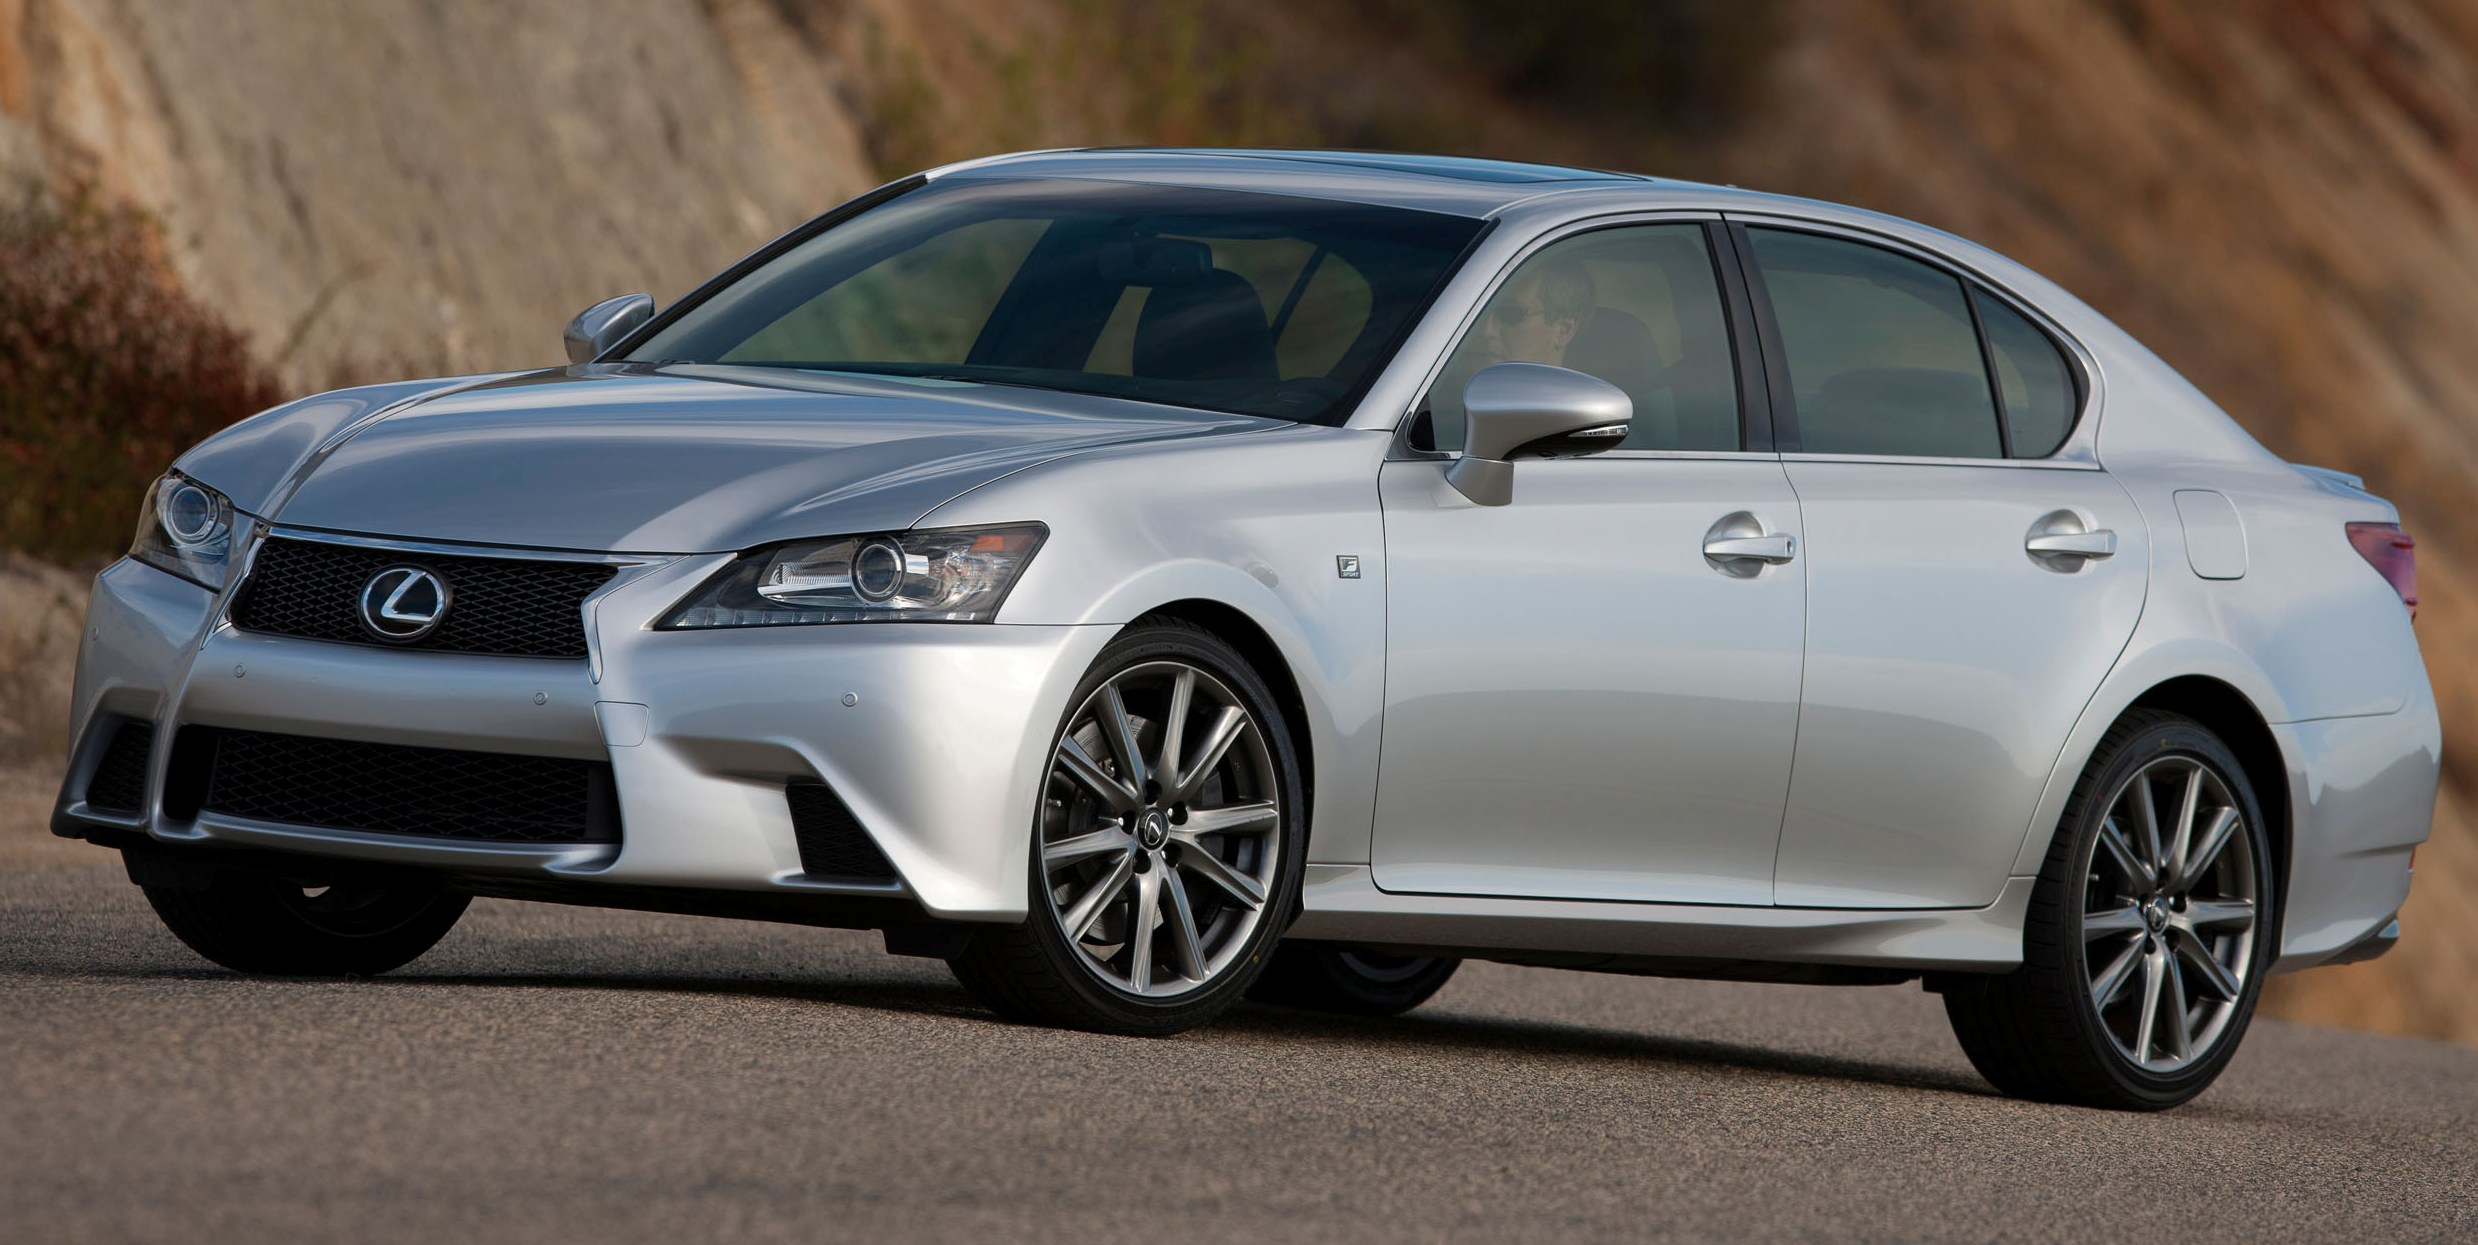 2014 lexus gs 350 review top speed. Black Bedroom Furniture Sets. Home Design Ideas